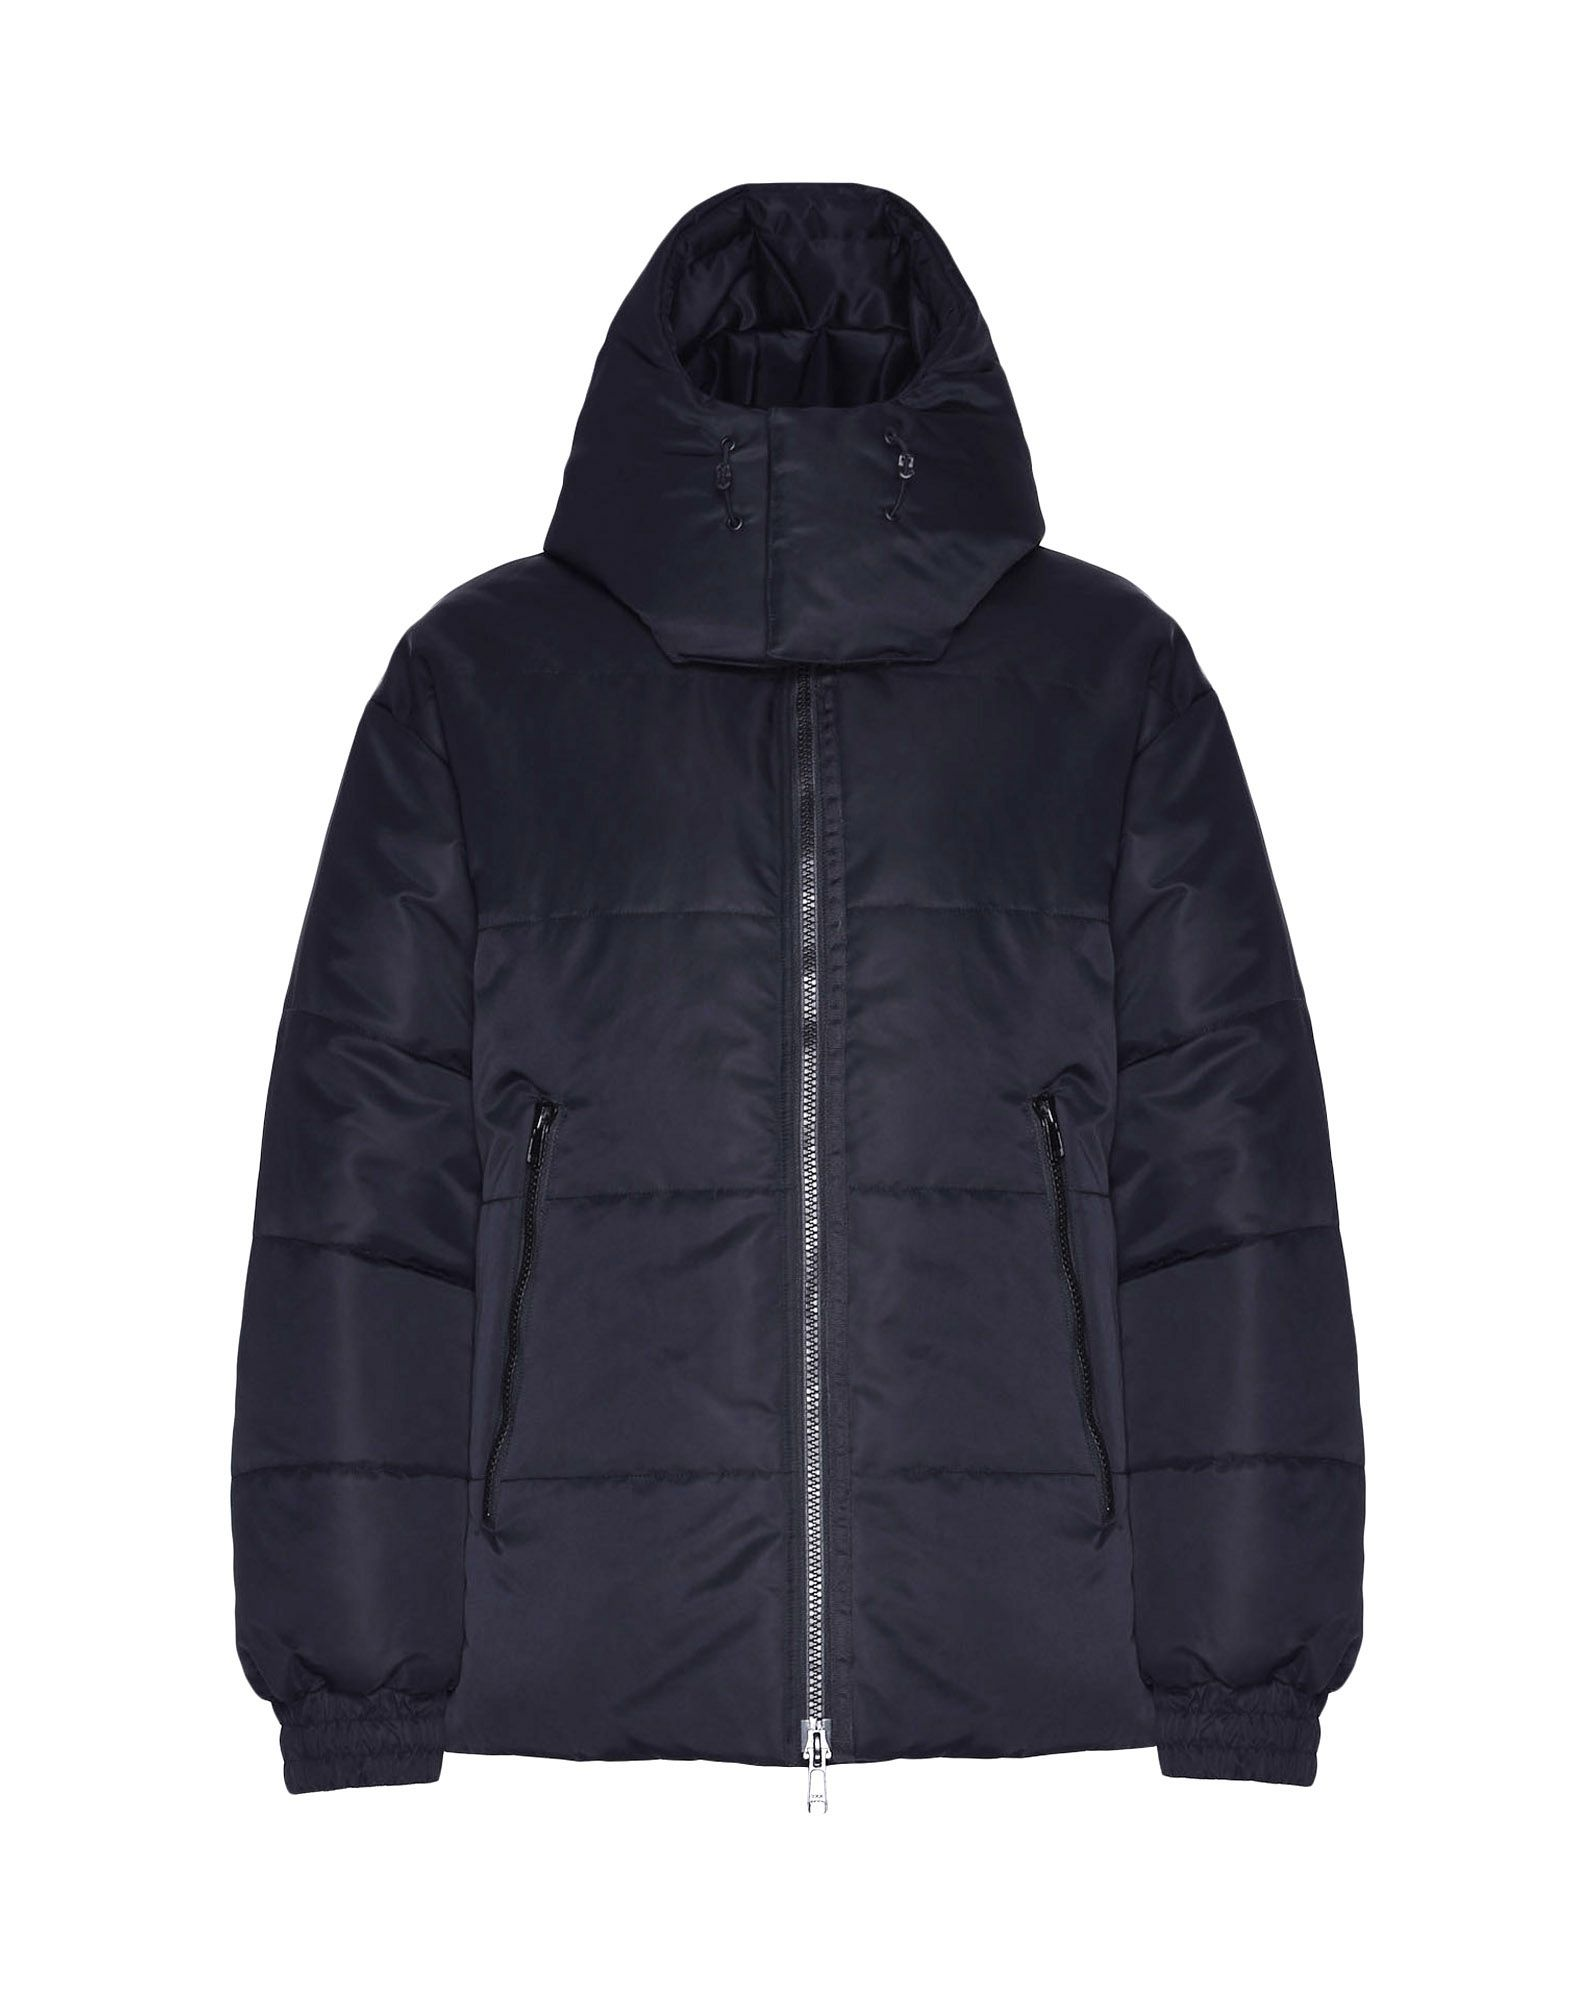 Y-3 Y-3 Padded Jacket Down jacket Man f